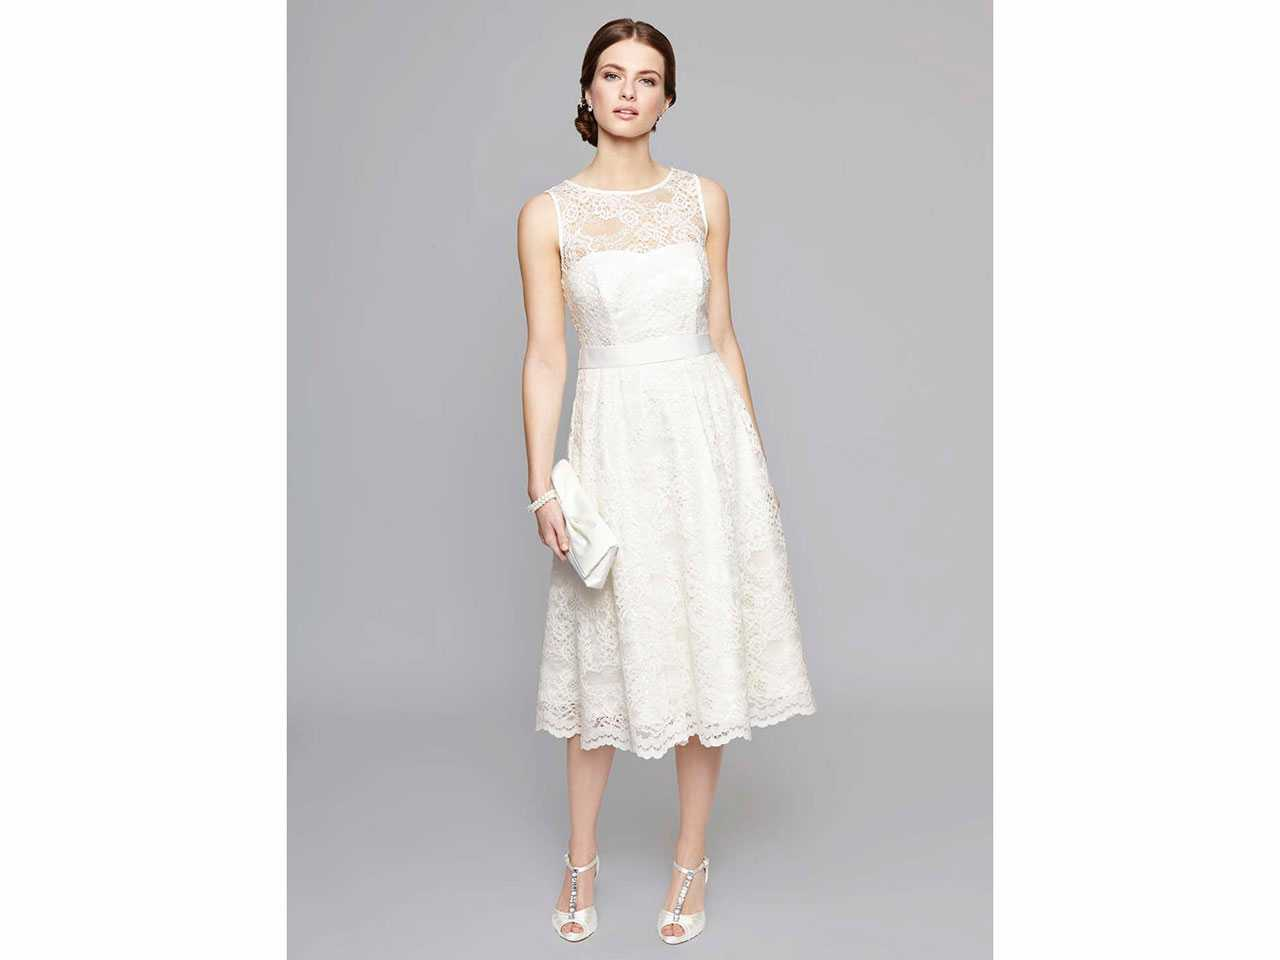 Wedding dresses for curvy brides: Shopping tips, advice, and brands ...